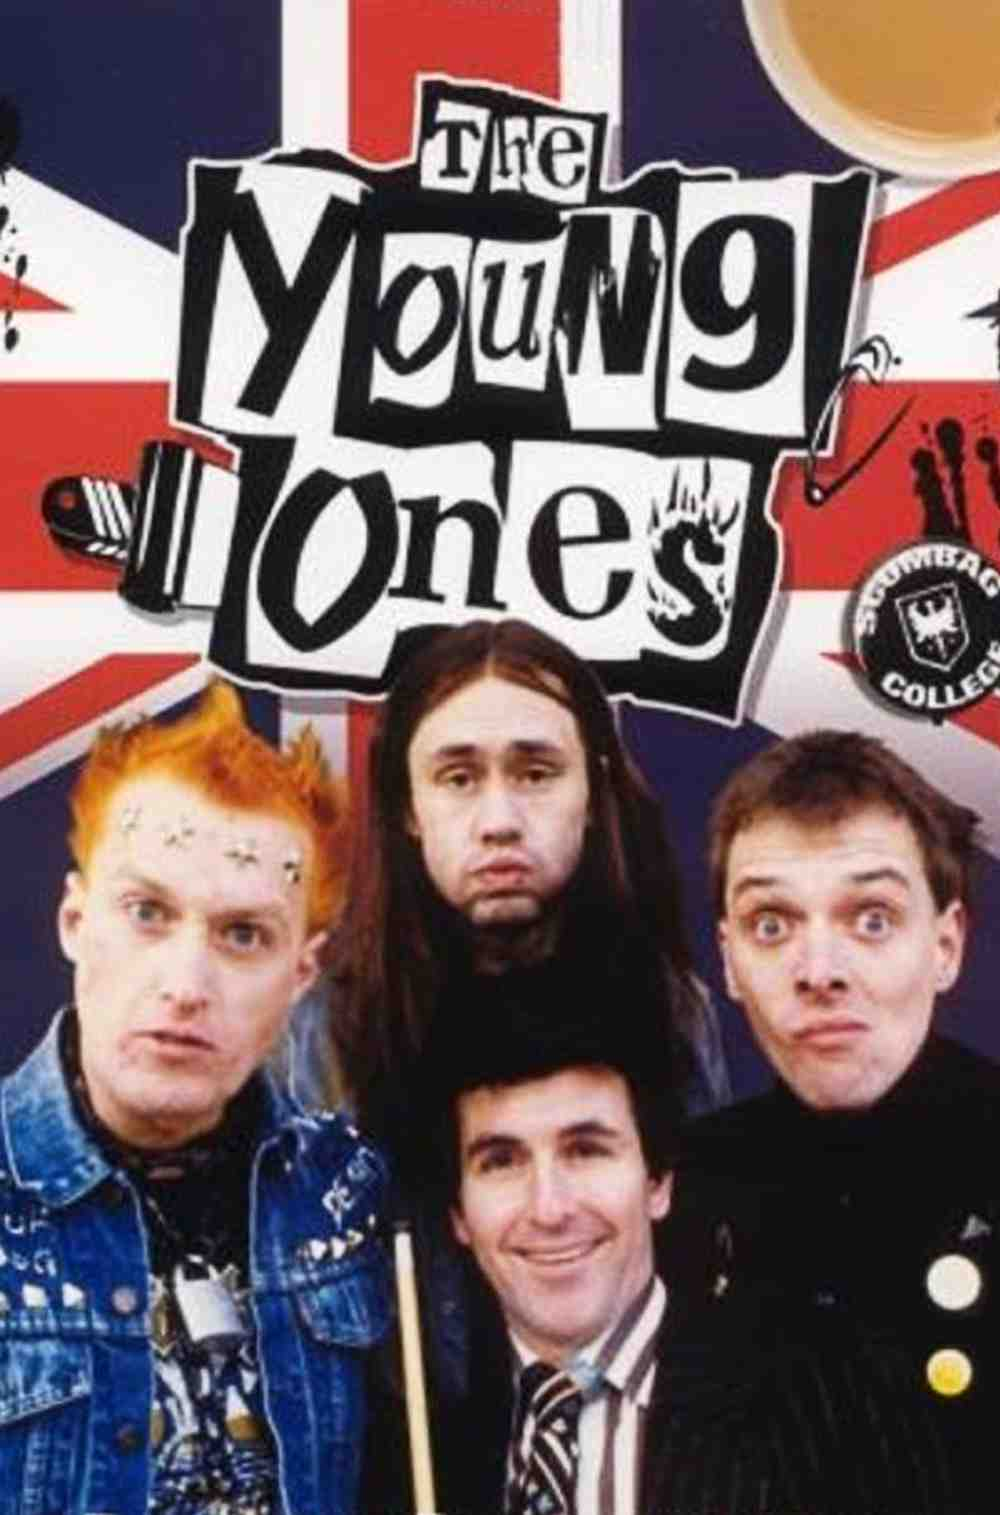 Poster for The Young Ones (1982)